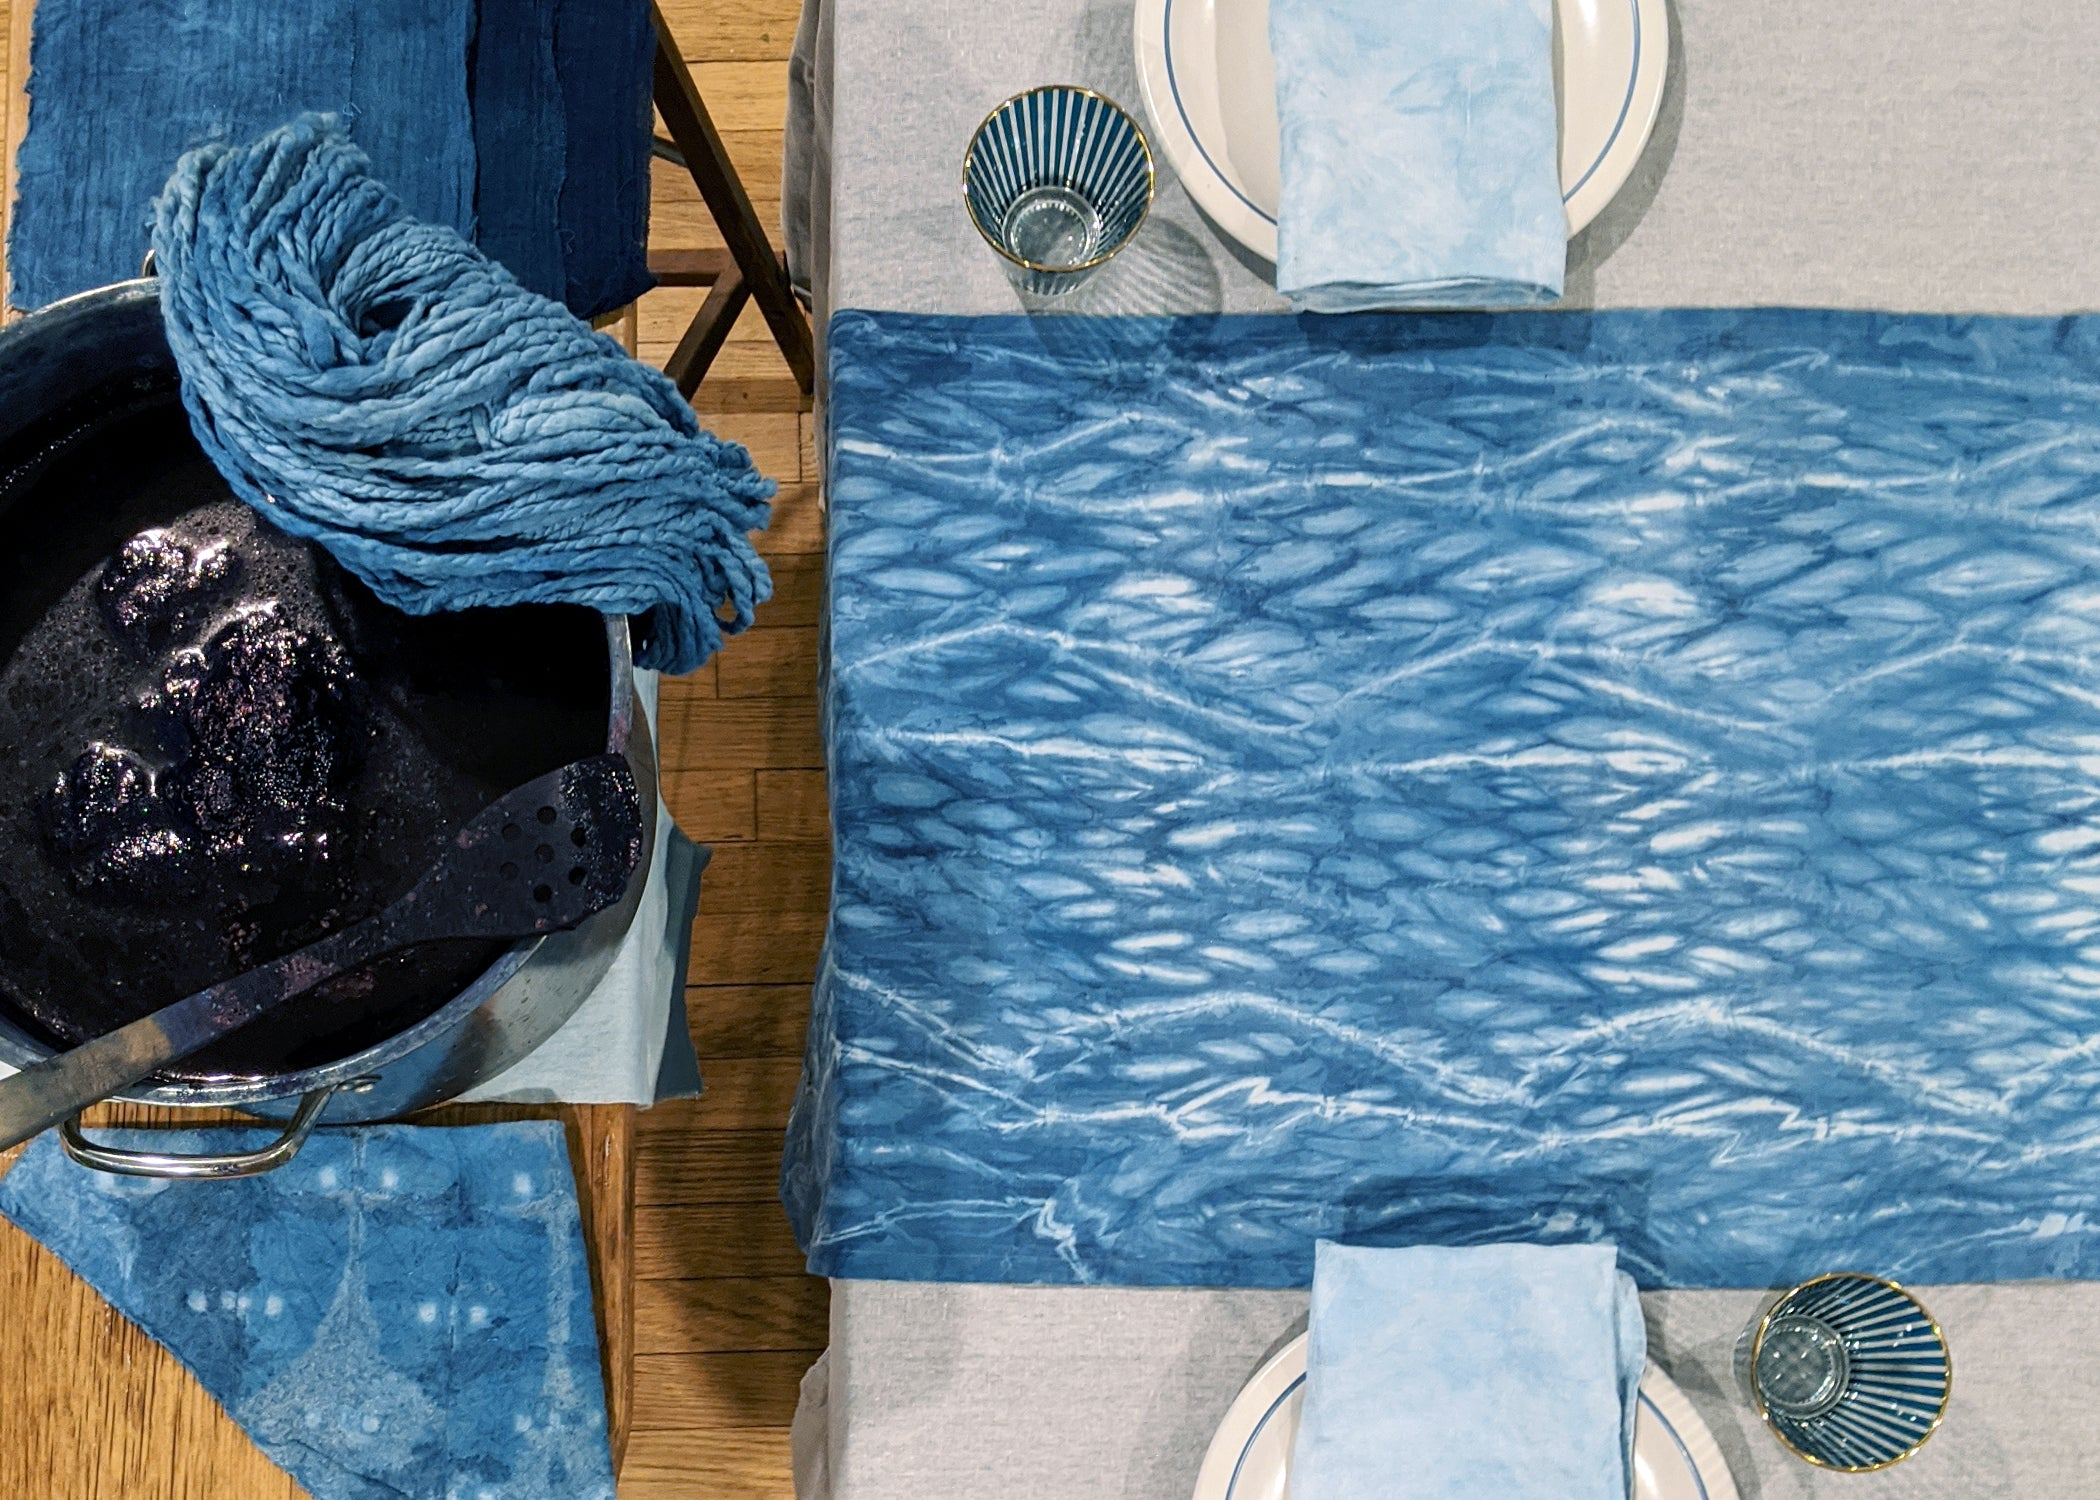 05/30 Natural Dye Workshop: Indigo Dyeing with Adventure Textiles on Saturday May 30 at 10am